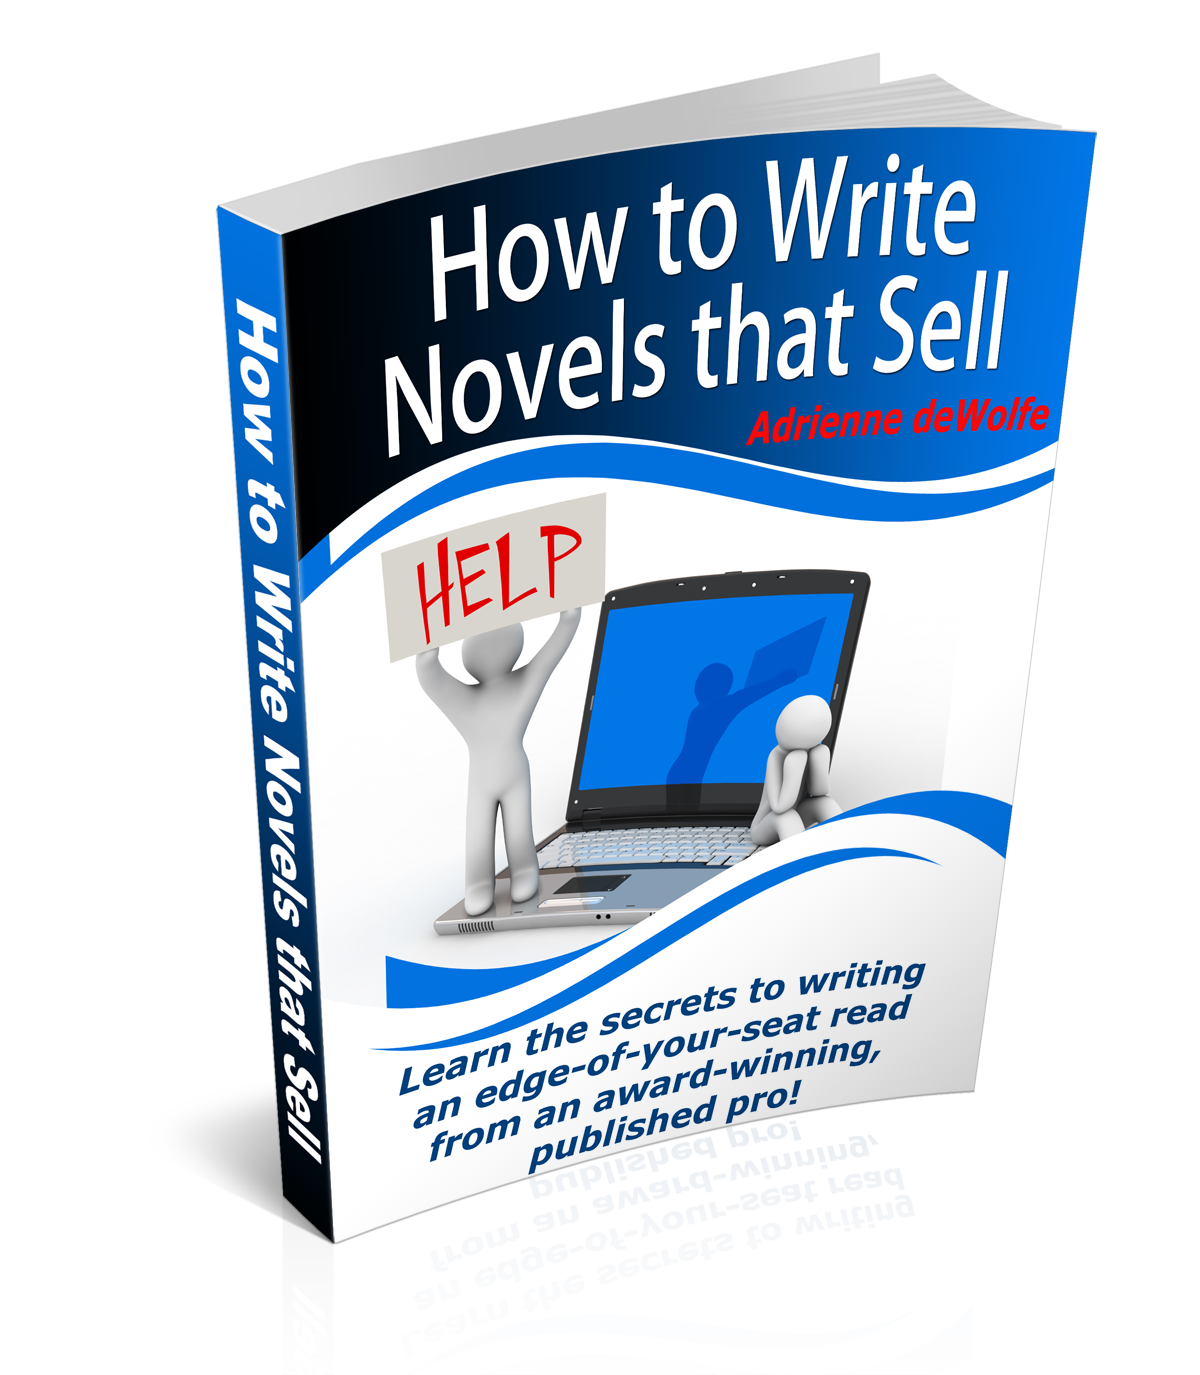 writing fiction novels Many novels, even quite a few 8 it's doubtful that anyone with an internet connection at his workplace is writing good fiction ten rules for writing fiction.